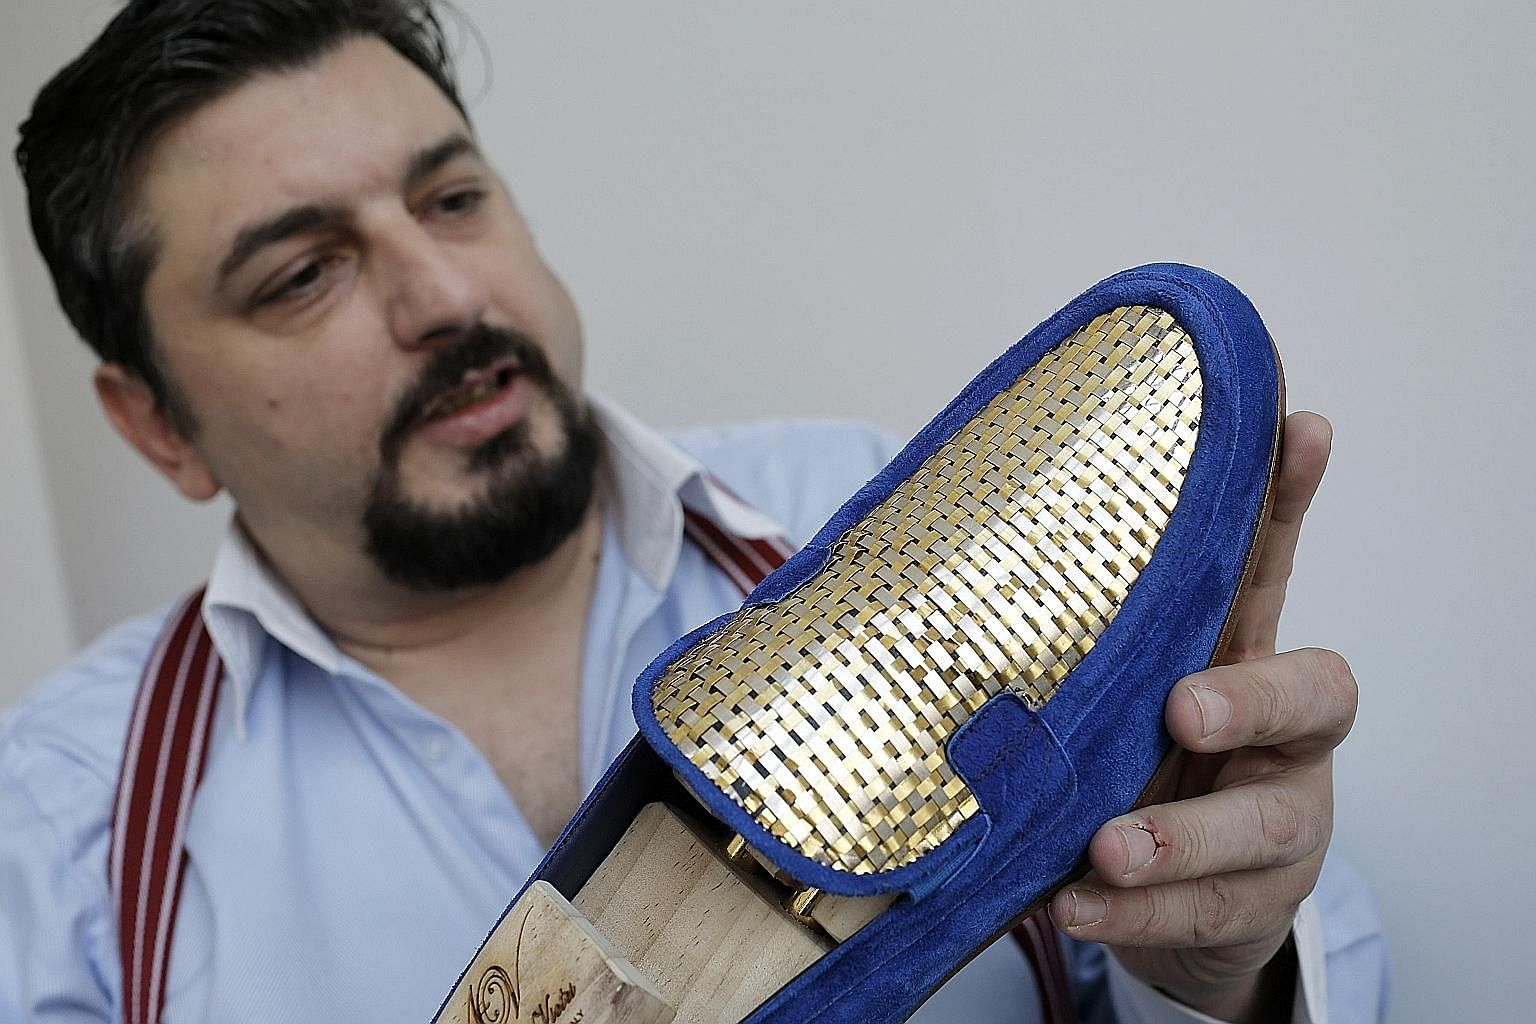 """Filthy rich and already boast enough glass slippers? Shoemaker Antonio Vietri from Turin, Italy, hopes to attract shoppers from wealthy Gulf countries with his 24K gold shoes: blue or black suede moccasins with stitched gold-plated uppers. """"The parti"""